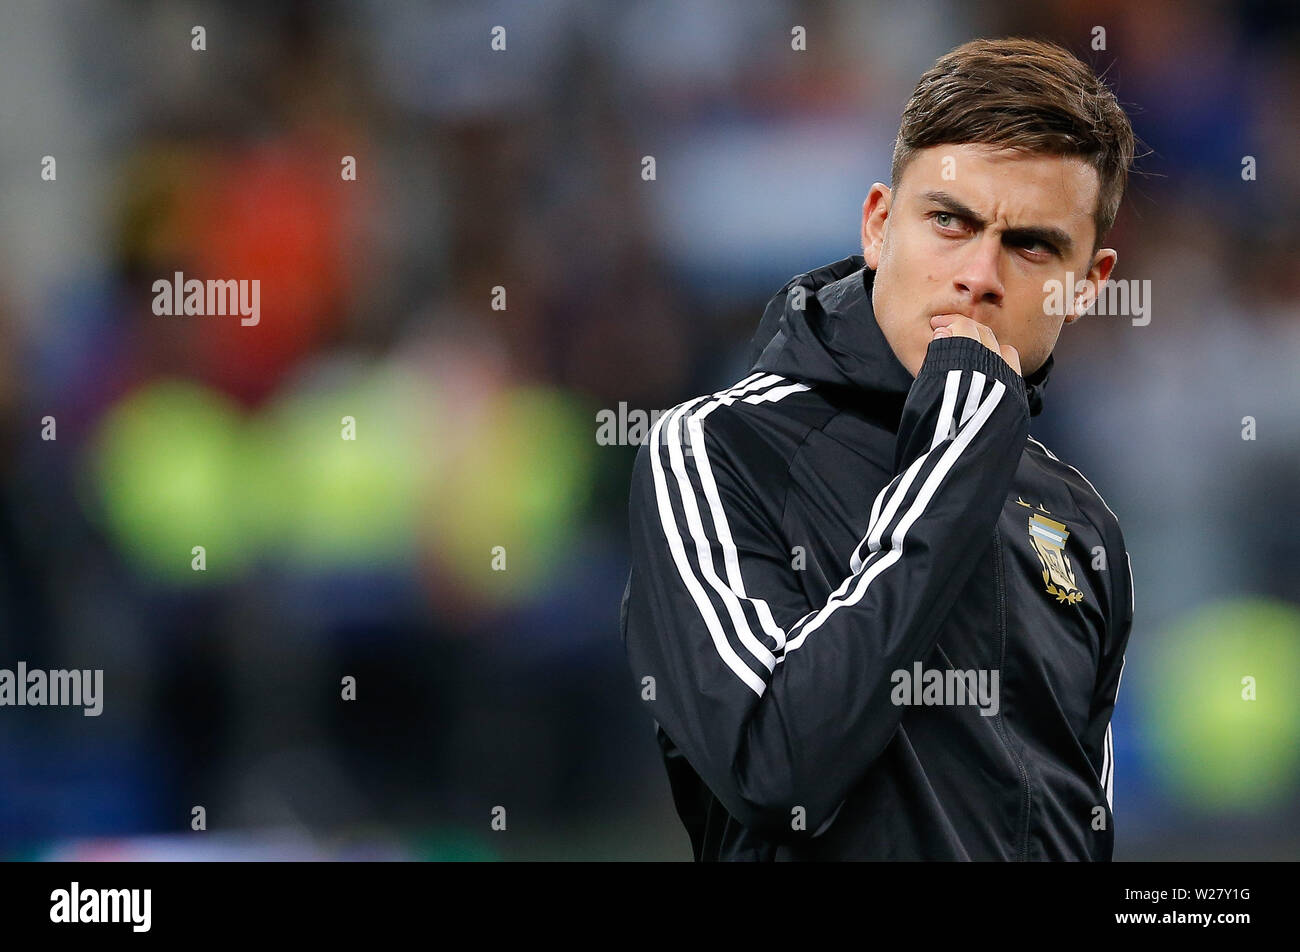 SÃO PAULO, SP - 06.07.2019: ARGENTINA VS. CHILE - Paulo Dybala from Argentina during a match between Argentina and Chile, valid for the third place match of Copa America 2019, held this Saturday (06) at the Corinthians Arena in São Paulo, SP. (Photo: Marcelo Machado de Melo/Fotoarena) - Stock Image